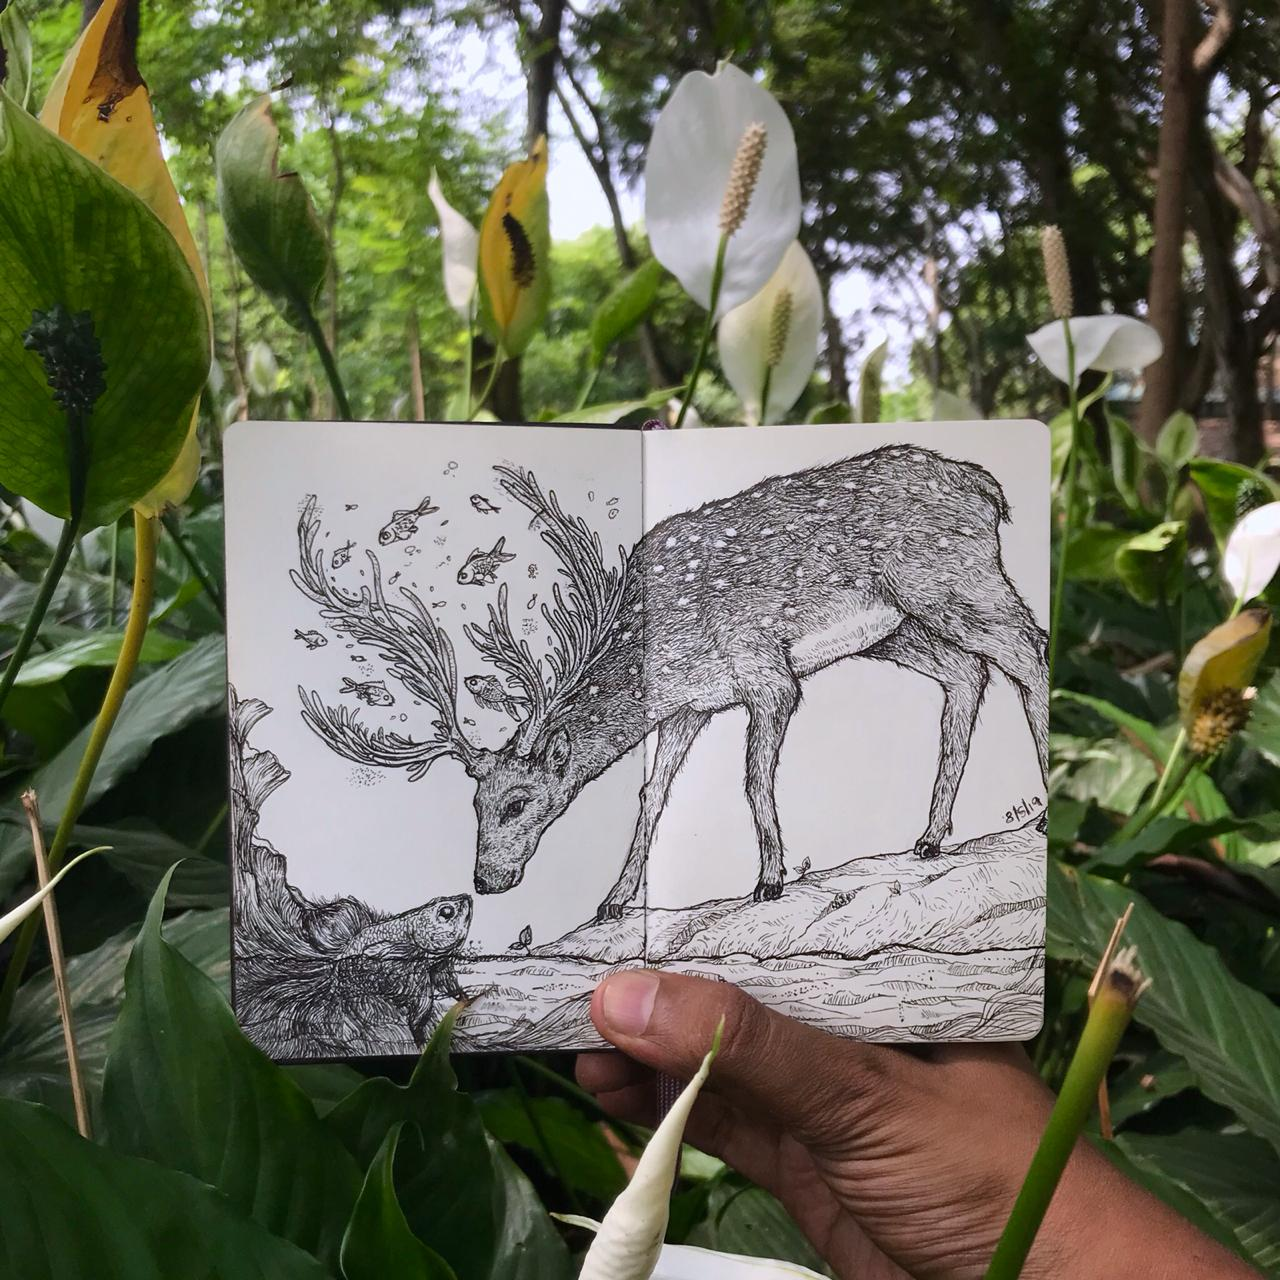 Goutham is a talented sketch artist who is passionate about the planet. When and where ever he can, he advocates no plastic and taking care of our environment. He sketched this beautiful Deer during a photowalk I recently conducted in Bangalore. He asked me to write a poem for his sketch and this is what I wrote -